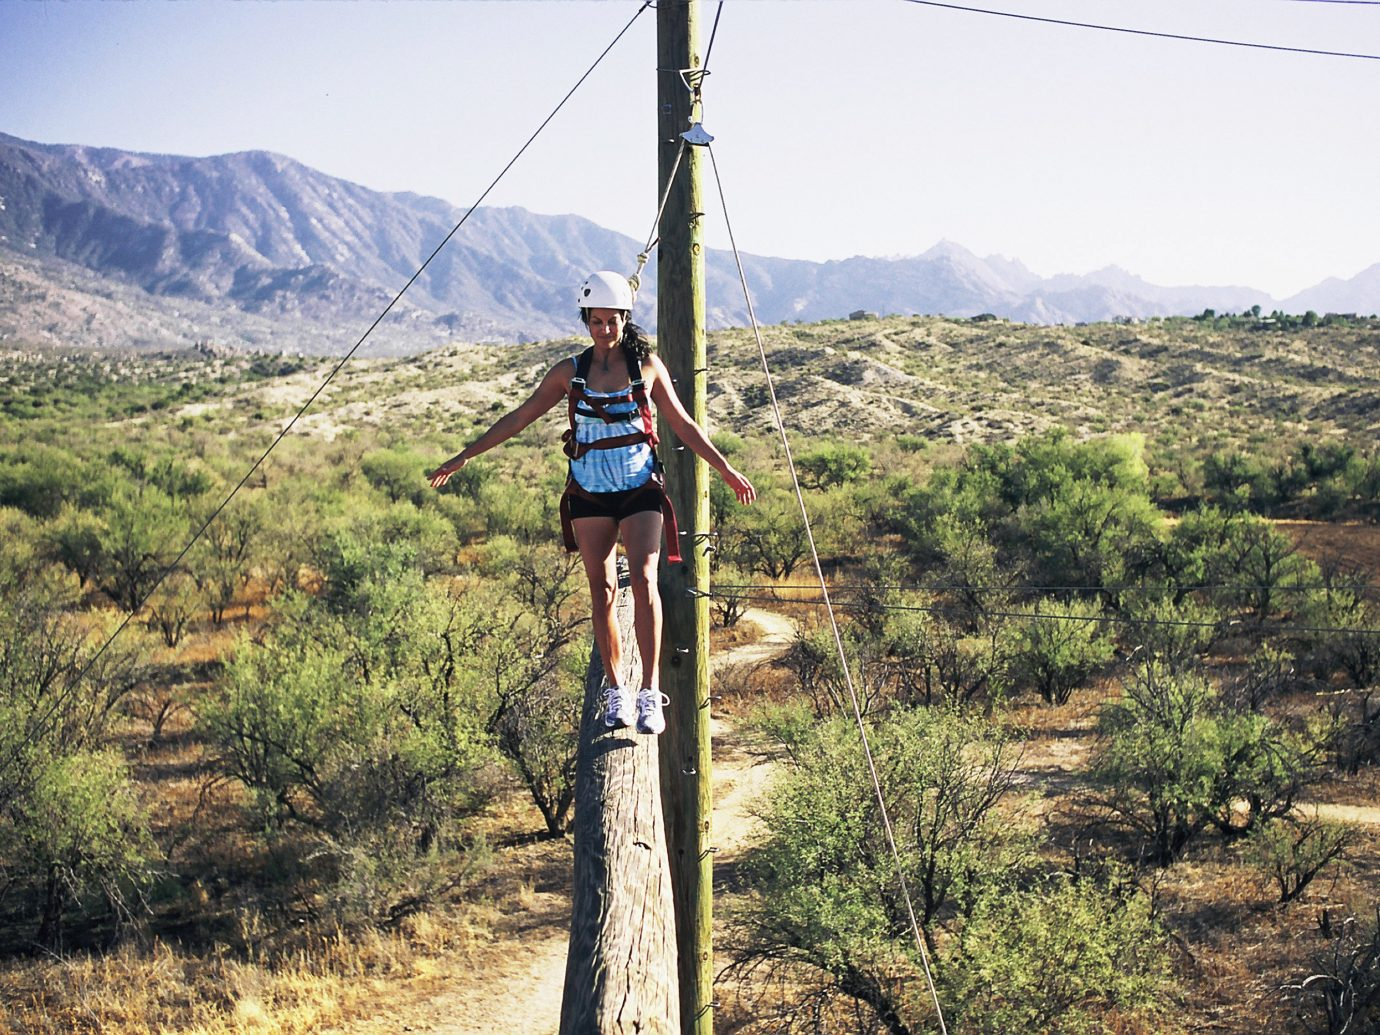 Adventure All-inclusive Fitness Hotels Resort Sport Wellness outdoor sky mountain grass mountain bike mountain biking vehicle bicycle Nature soil extreme sport cycle sport freeride trail dirt hillside highland